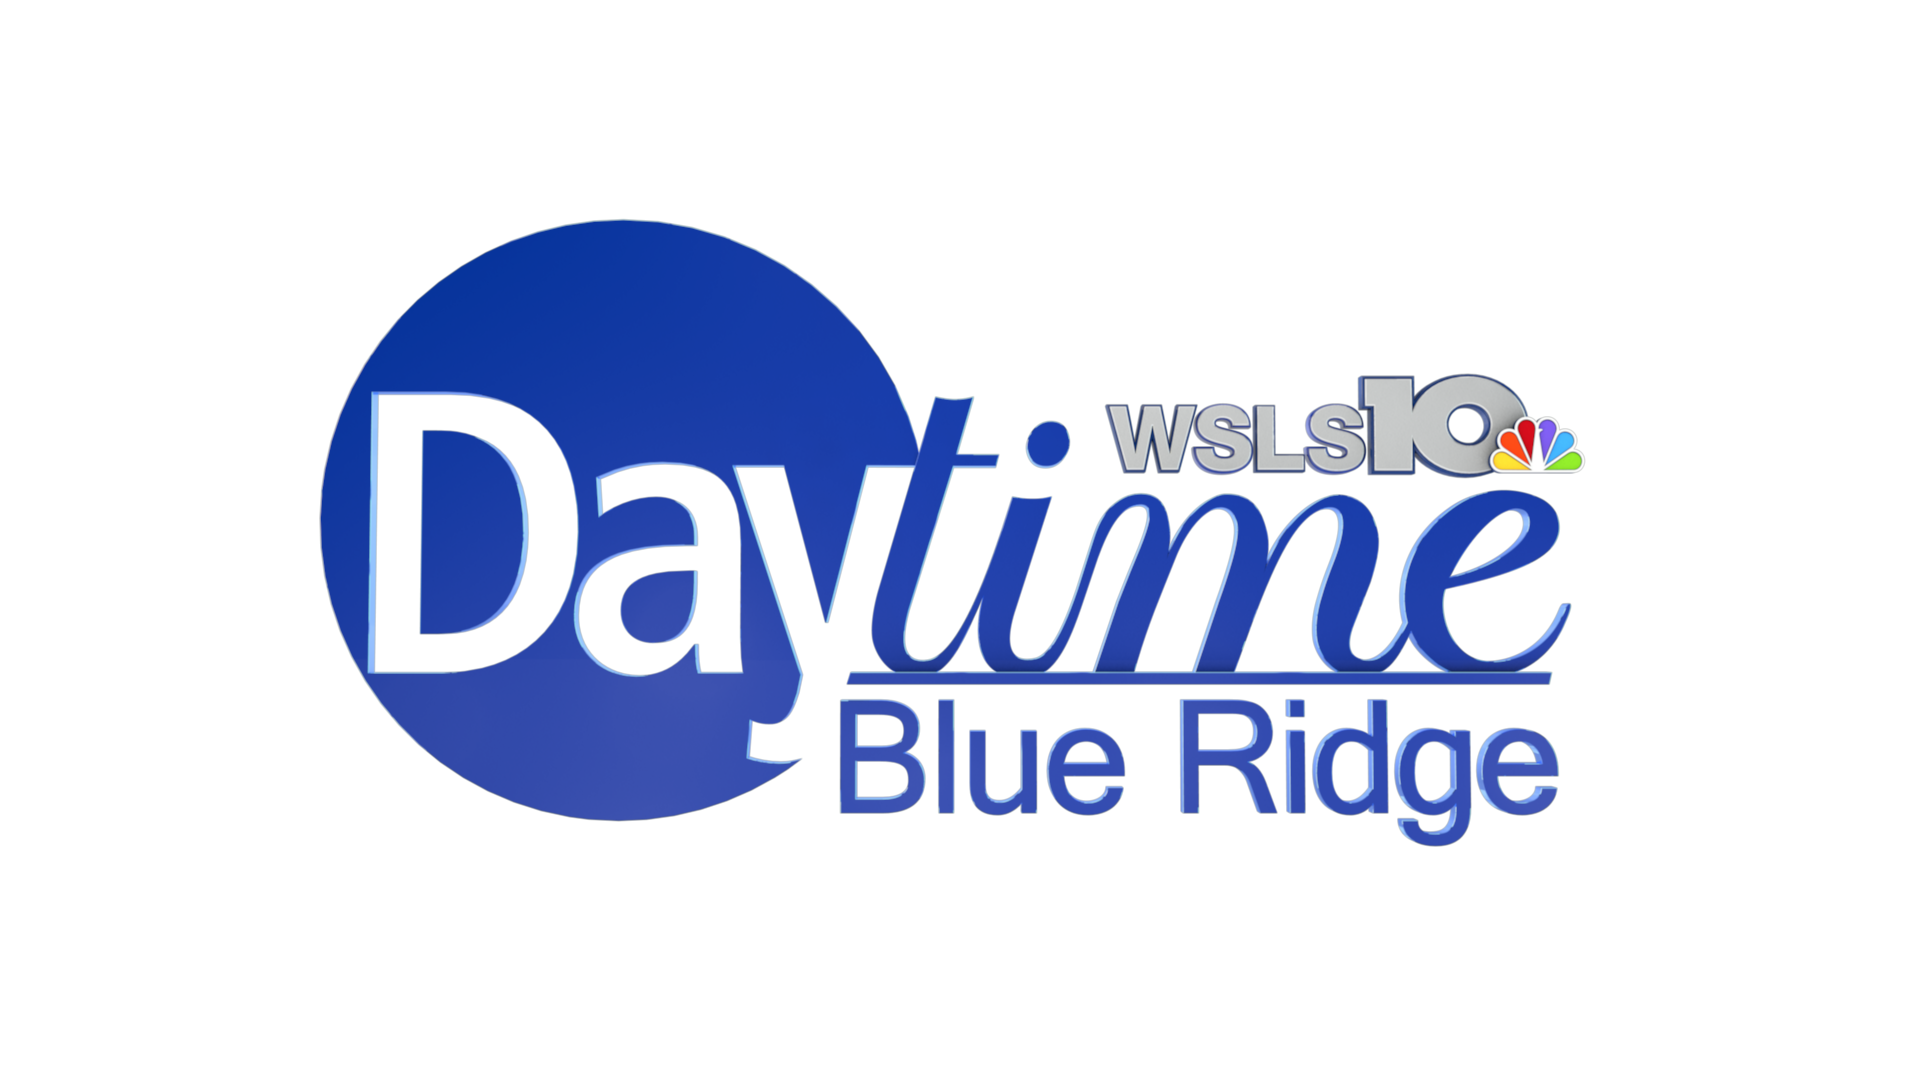 Brittany from WSLS Daytime Blue Ridge visits Primped 365 Studio